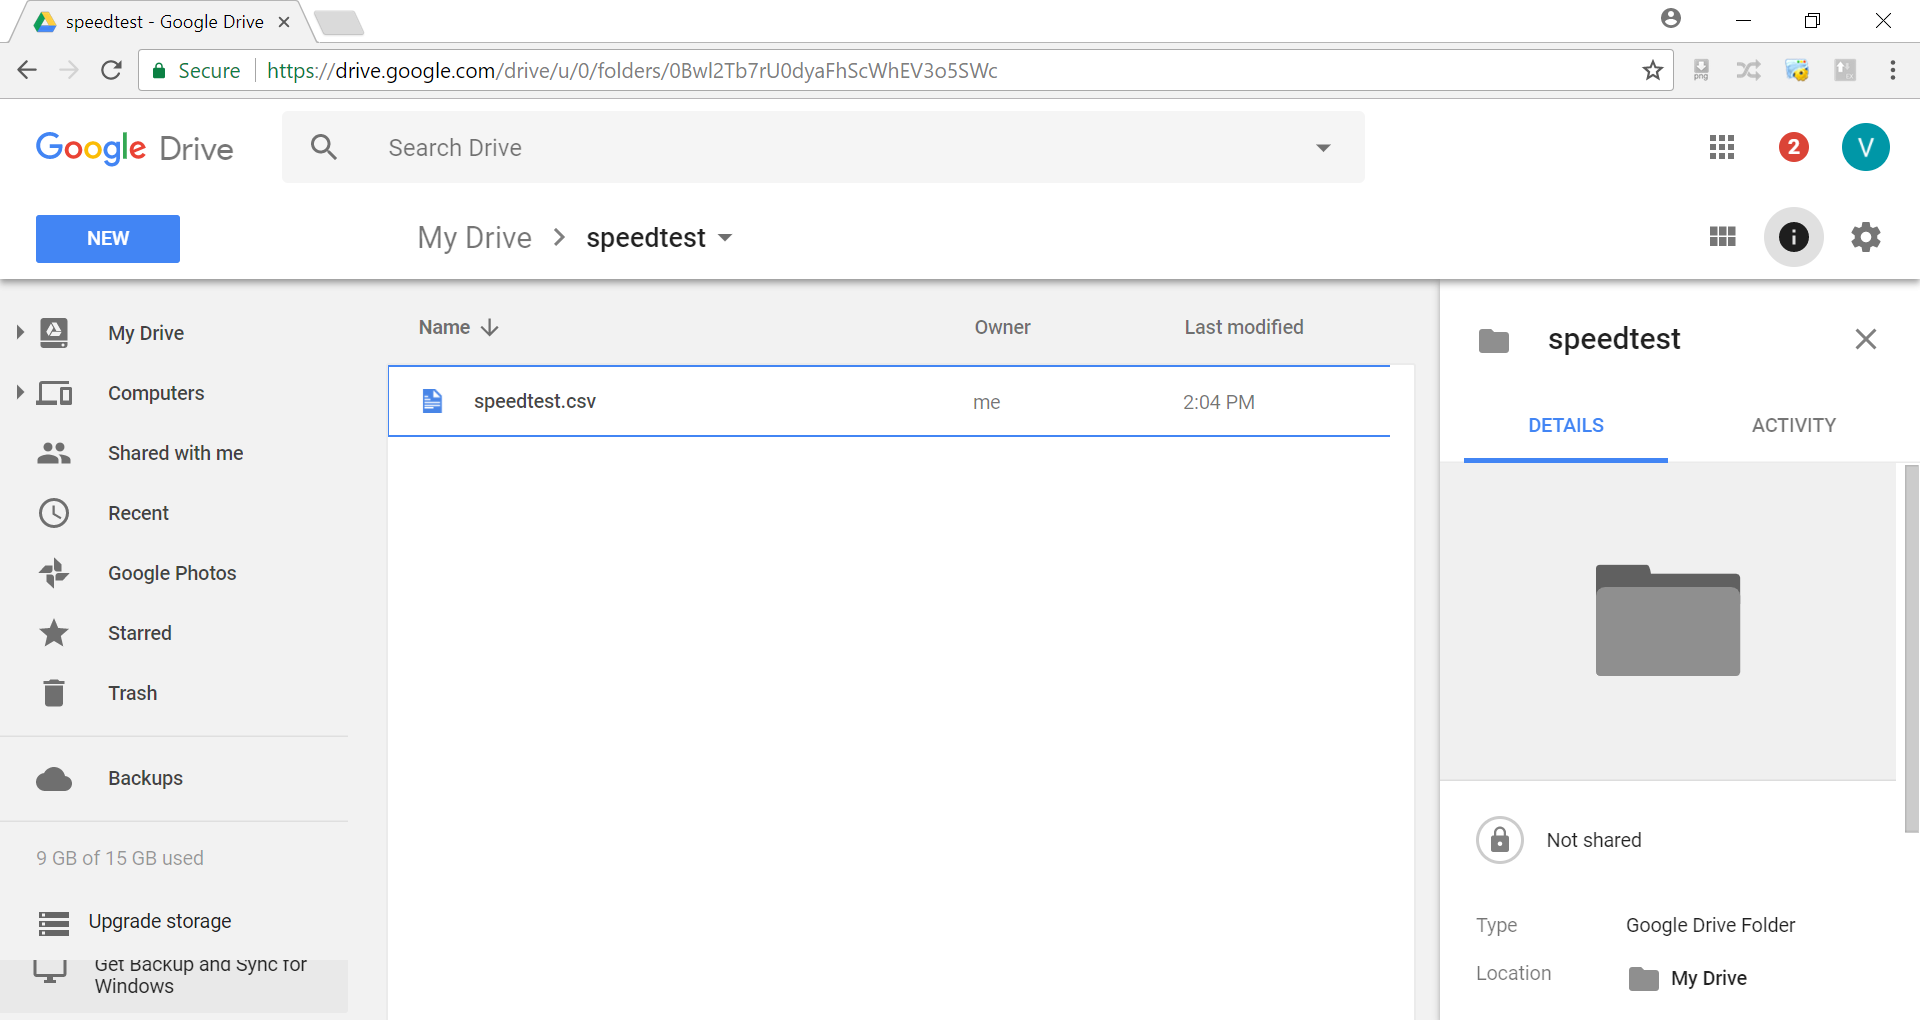 Google Drive - speedtest.csv